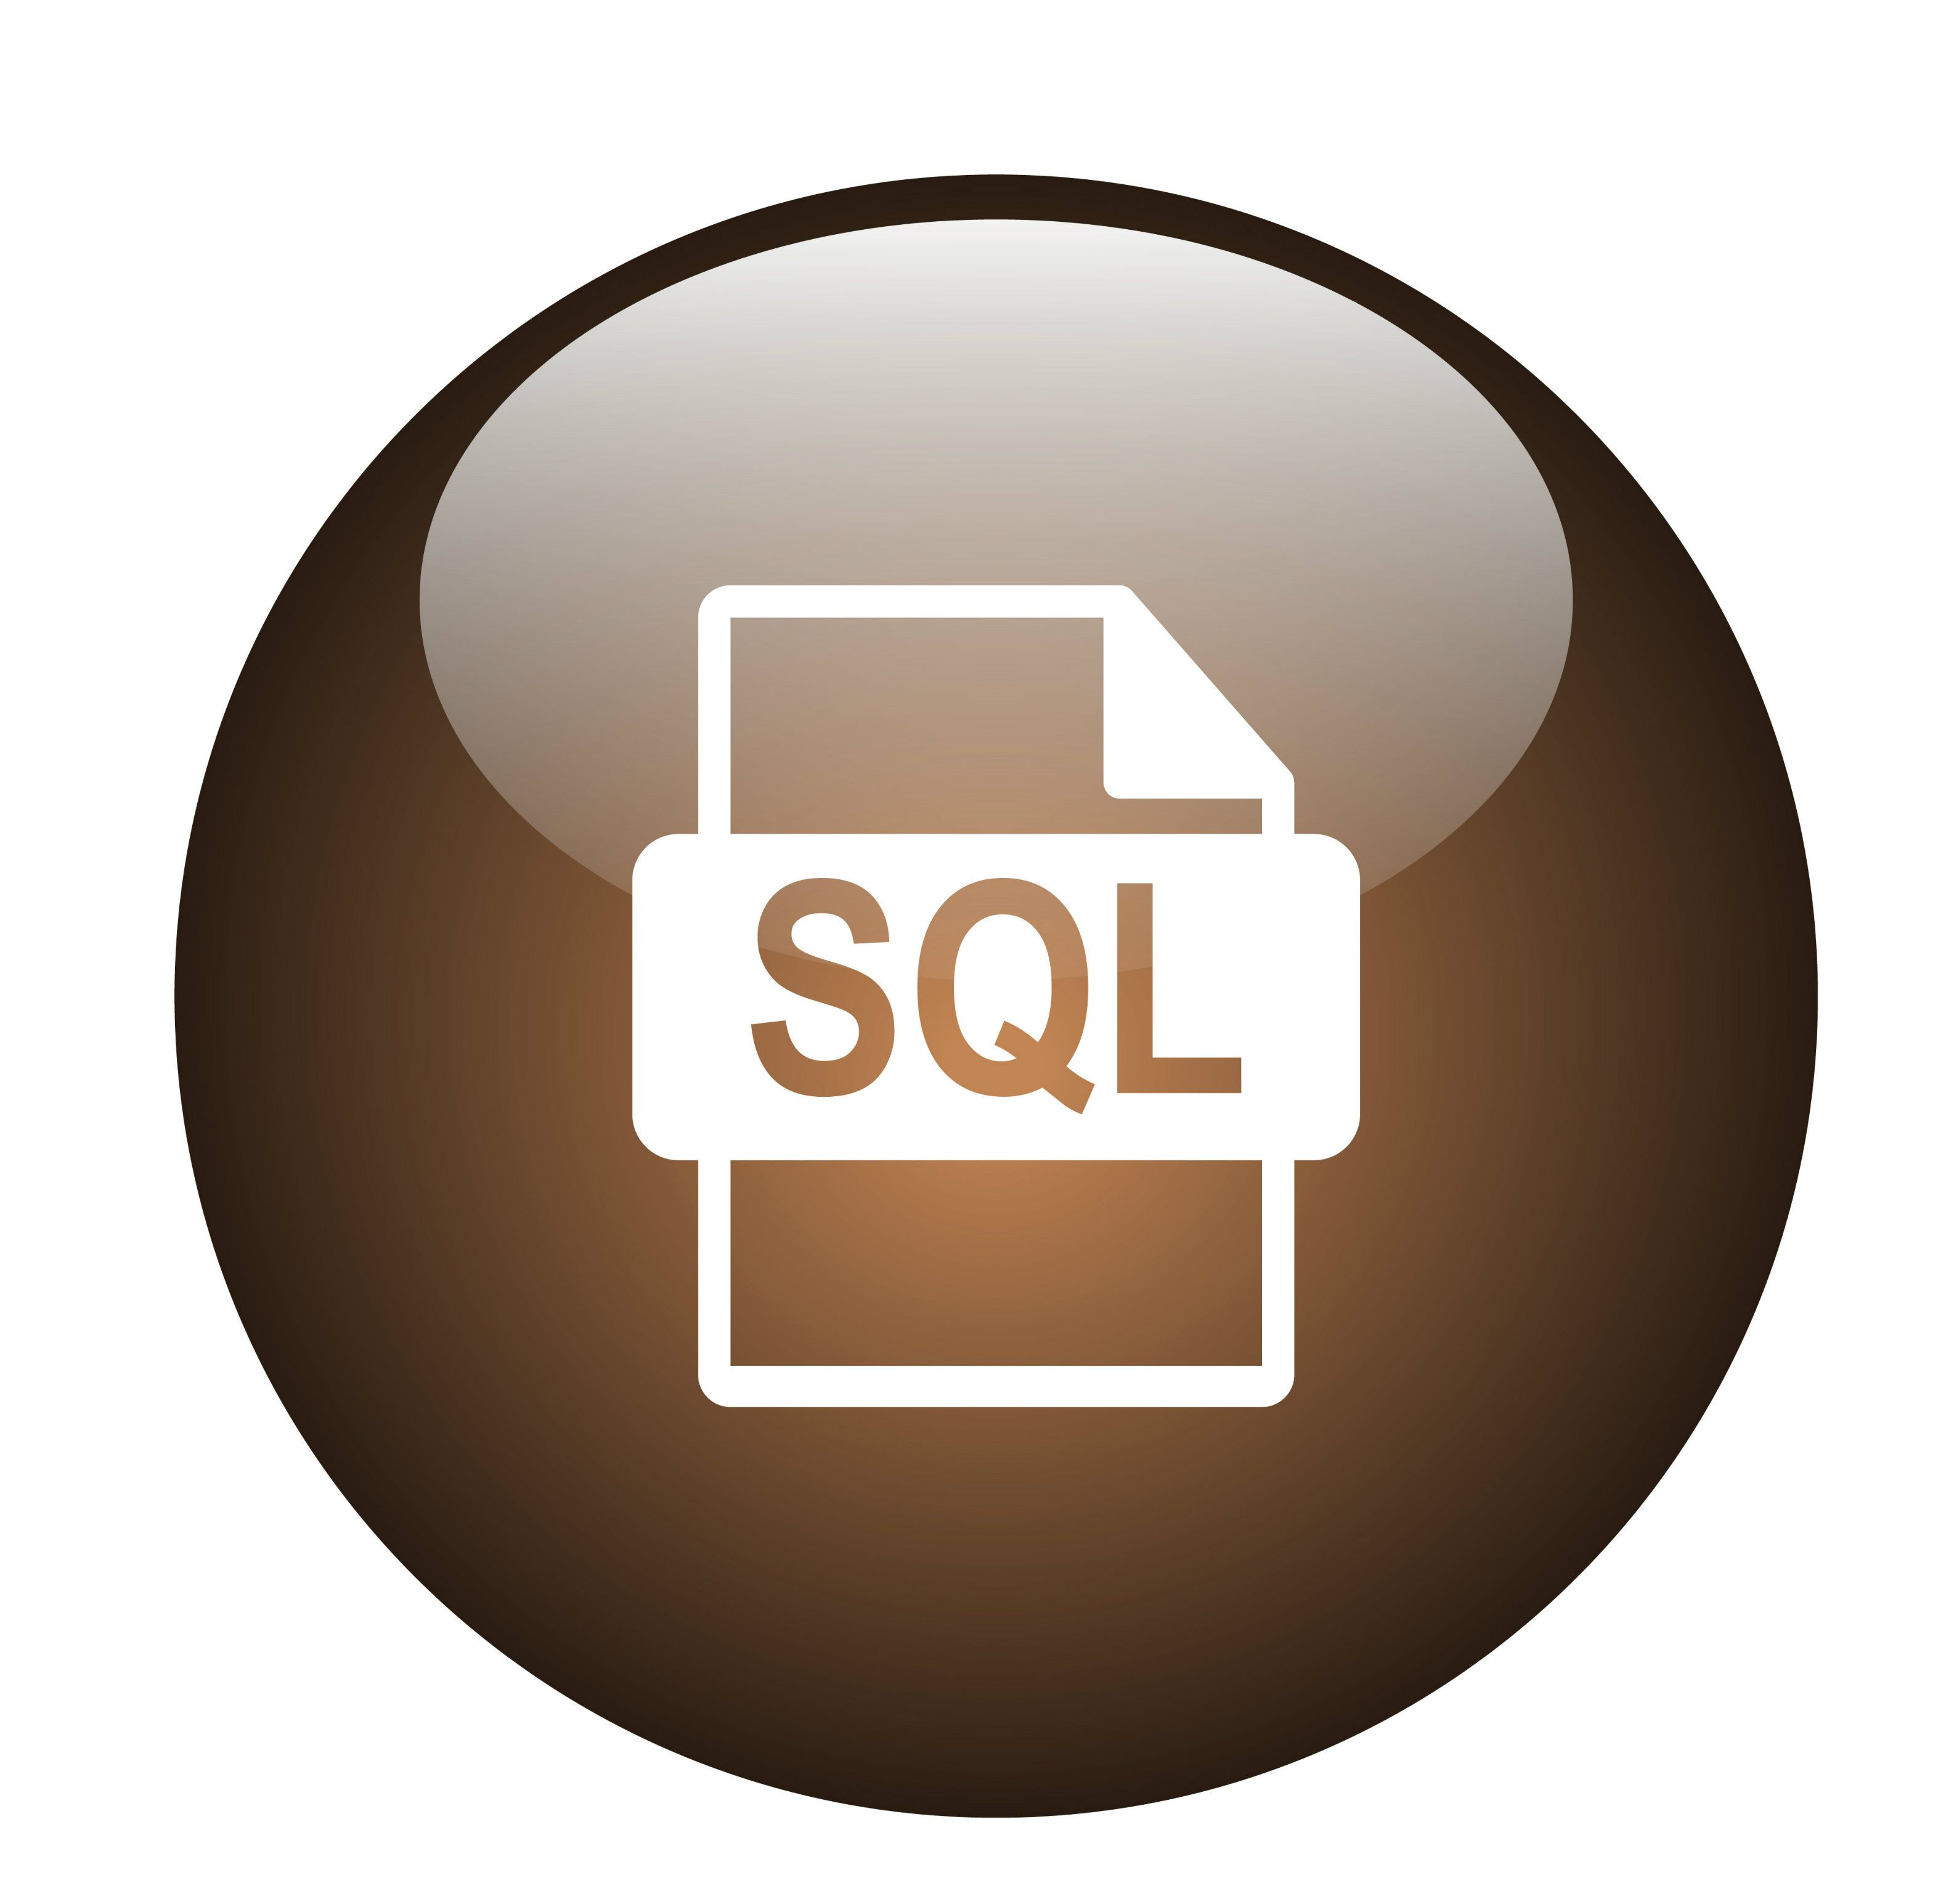 Show Tables Command In Sql